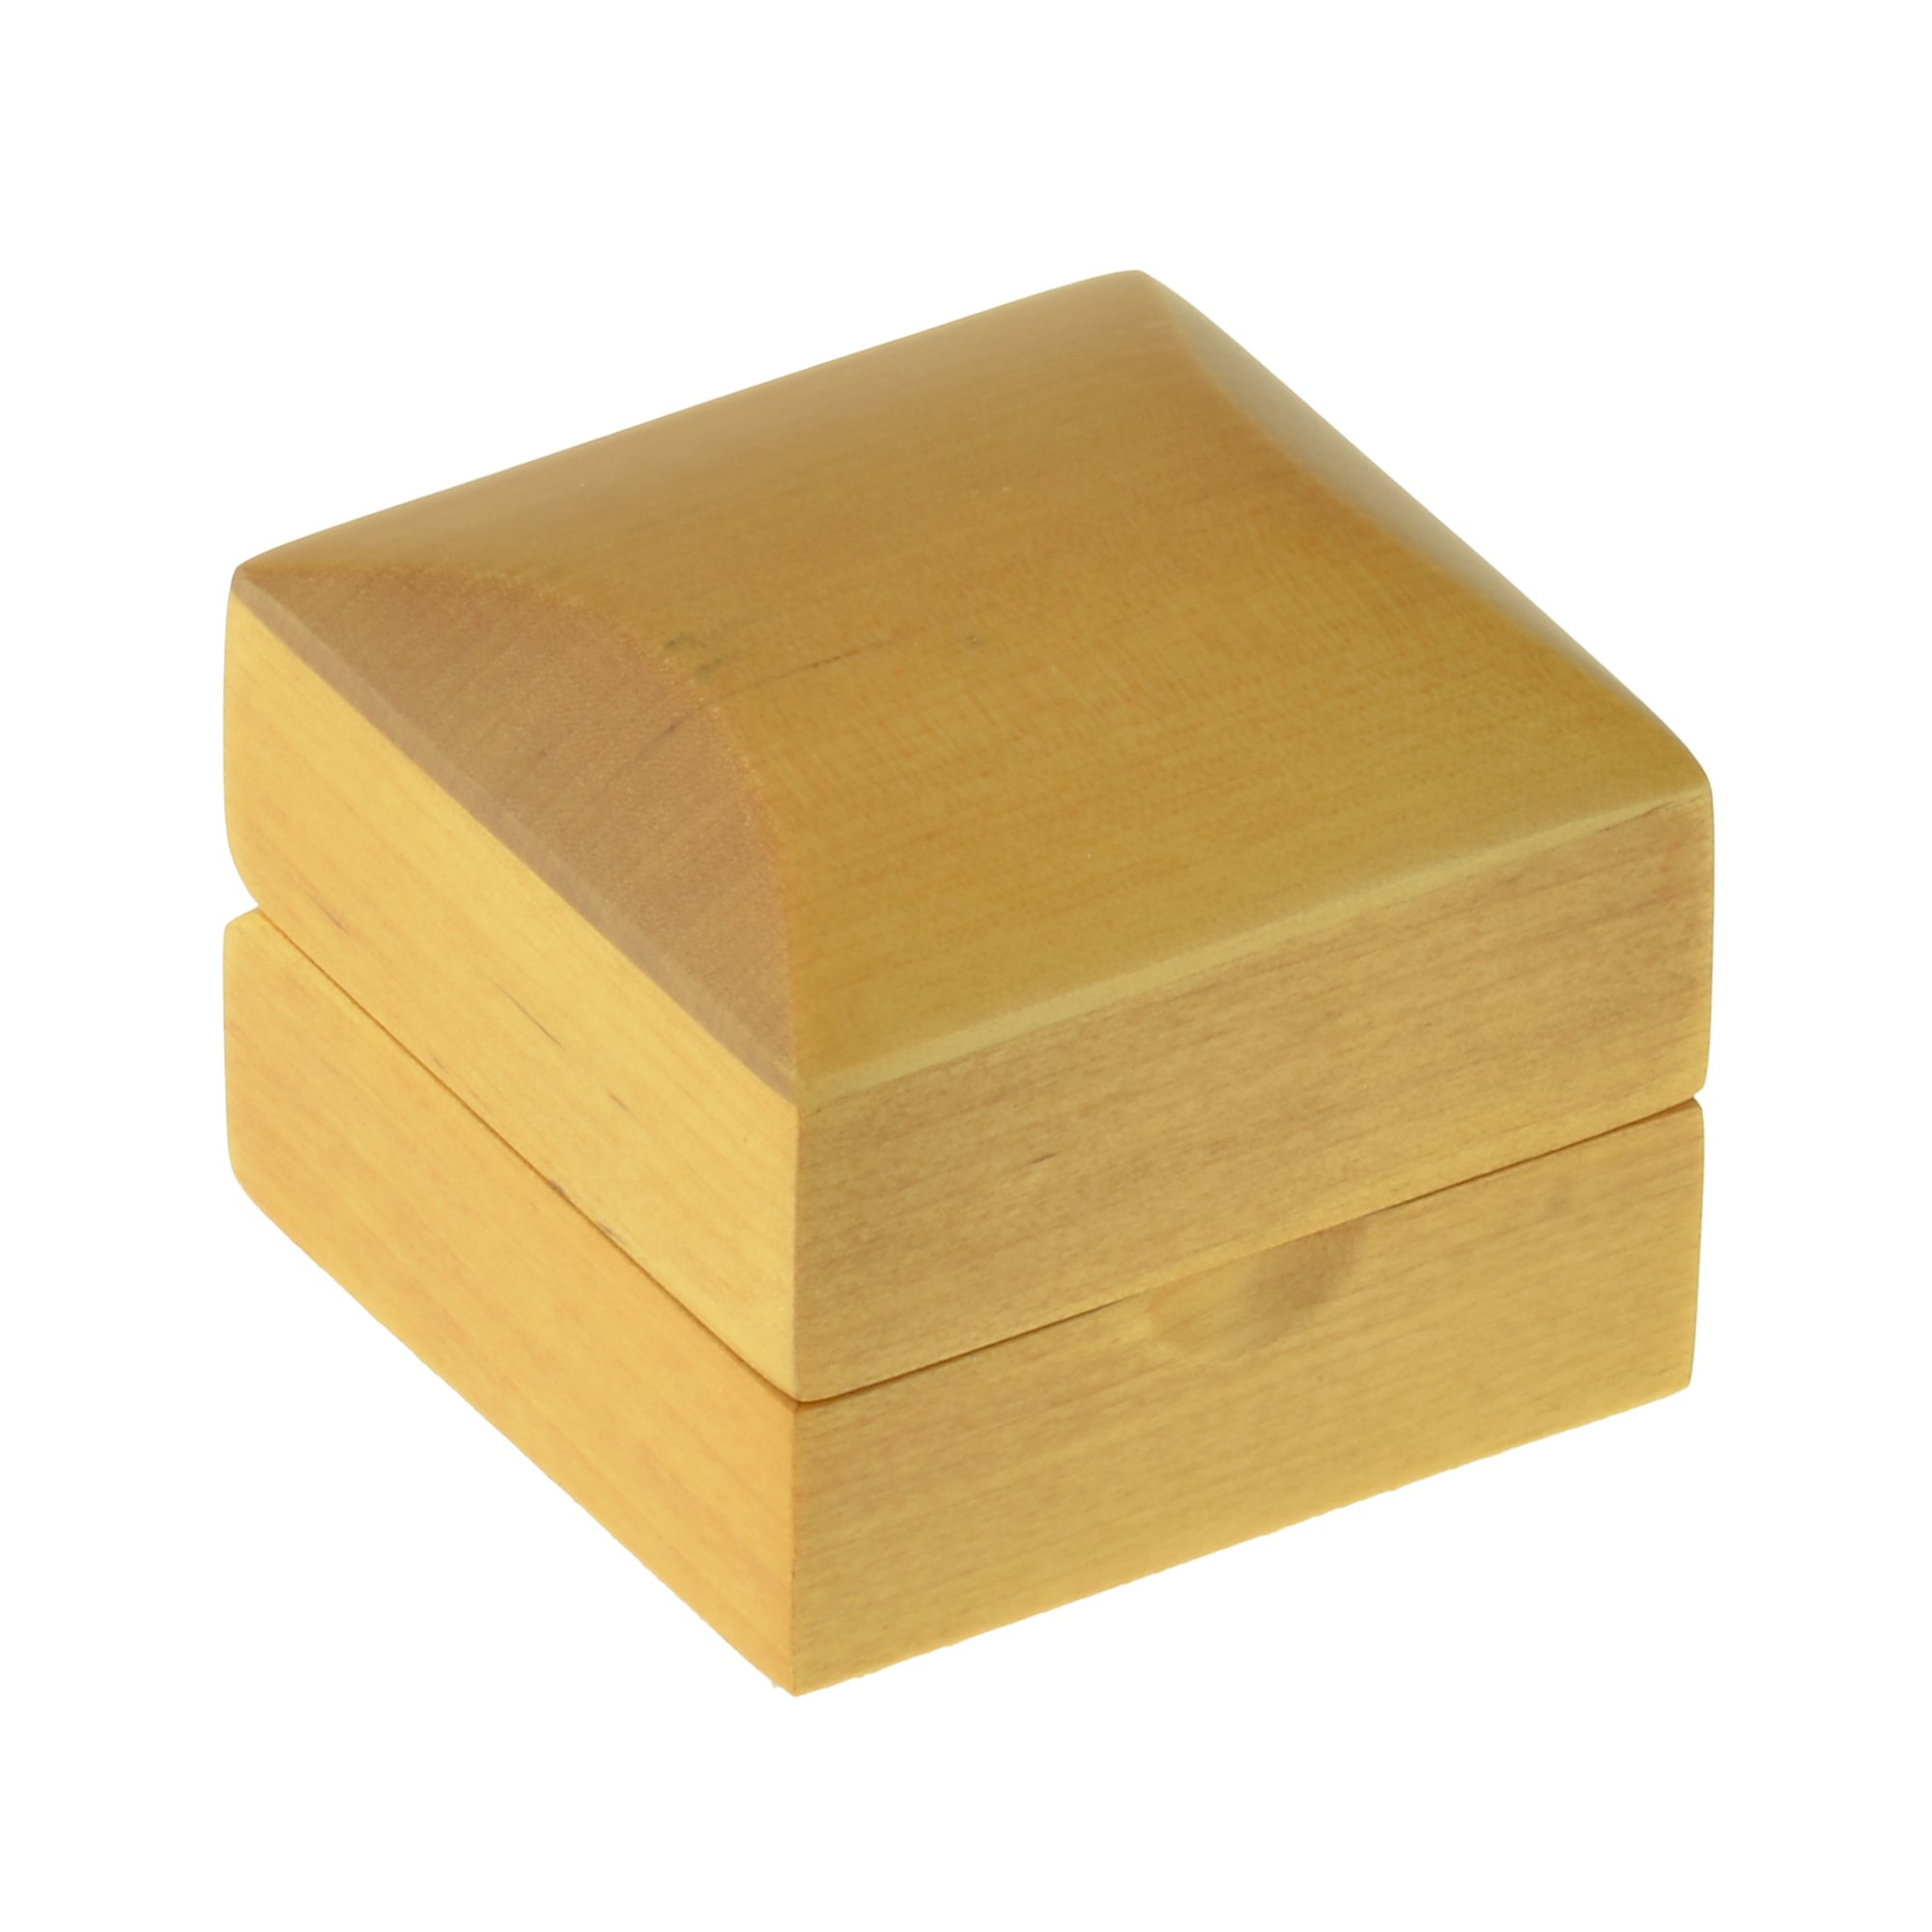 Geff House Maple Wood Ring Jewelry Gift Box by Geff House (Image #3)